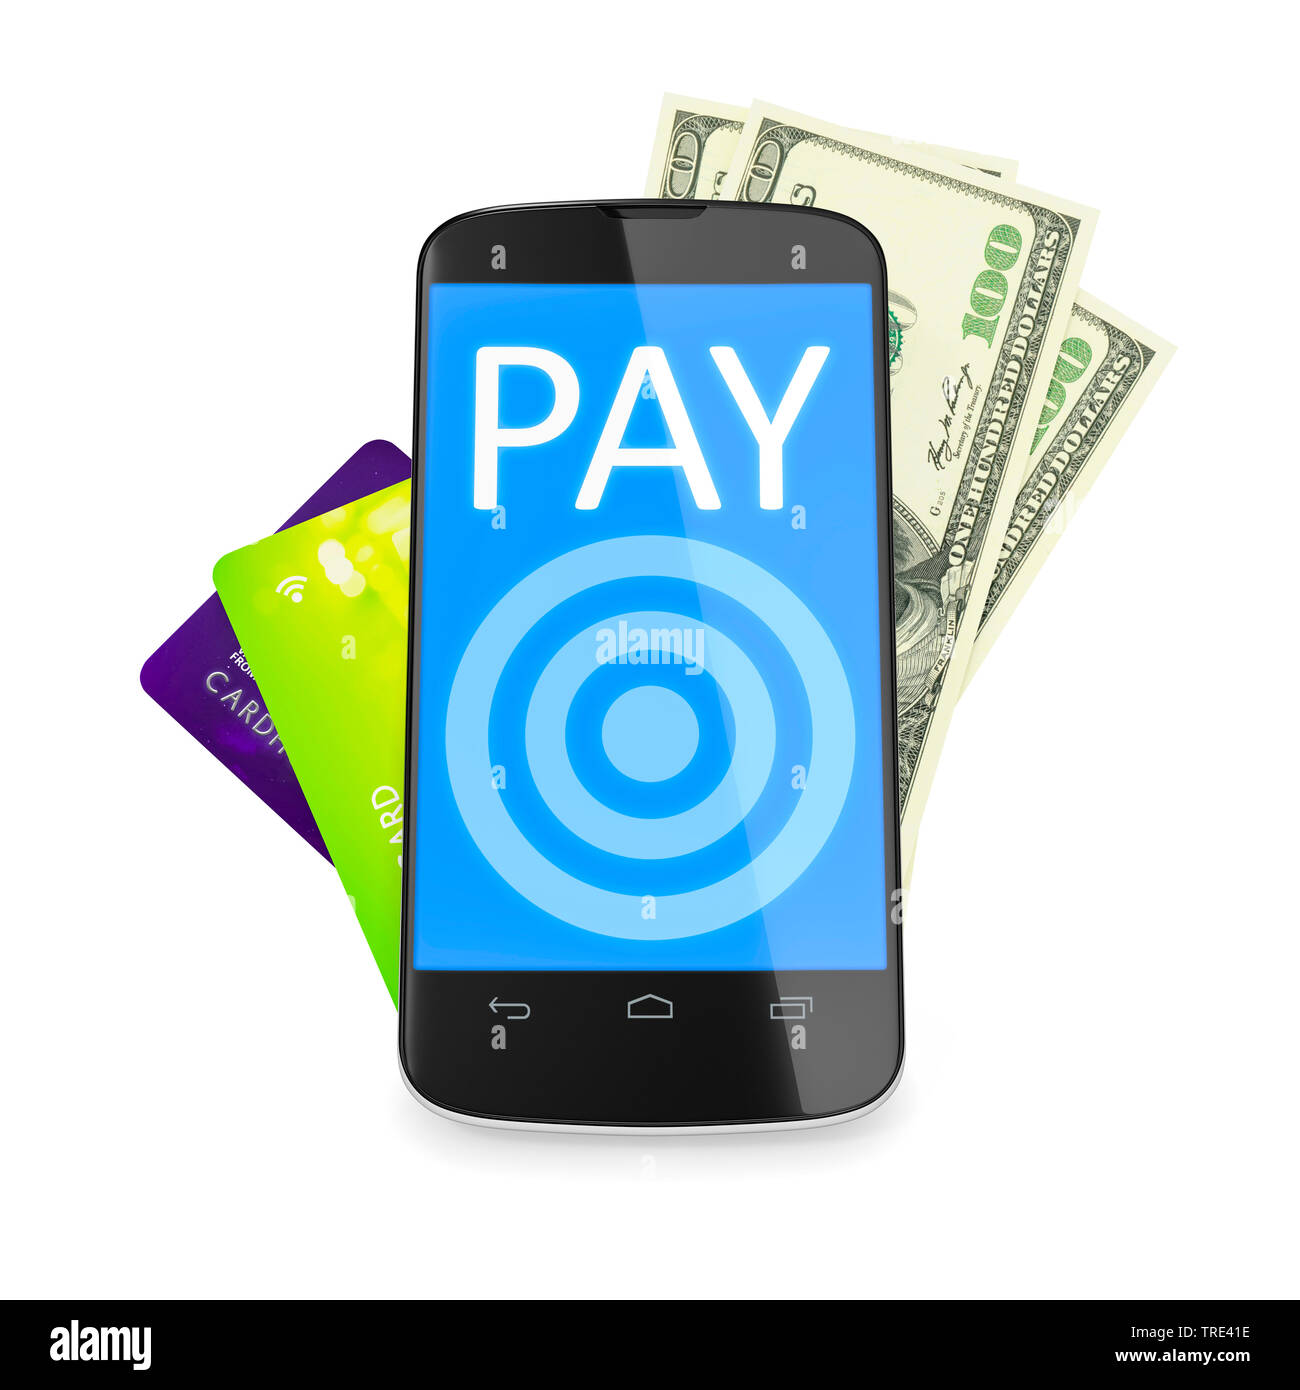 Mobiltelefon mit Kreditkarten und Bargeld im Hintergrund (Mobile Payment)   | Mobile phone with credit cards and cash money in the background (mobile - Stock Image